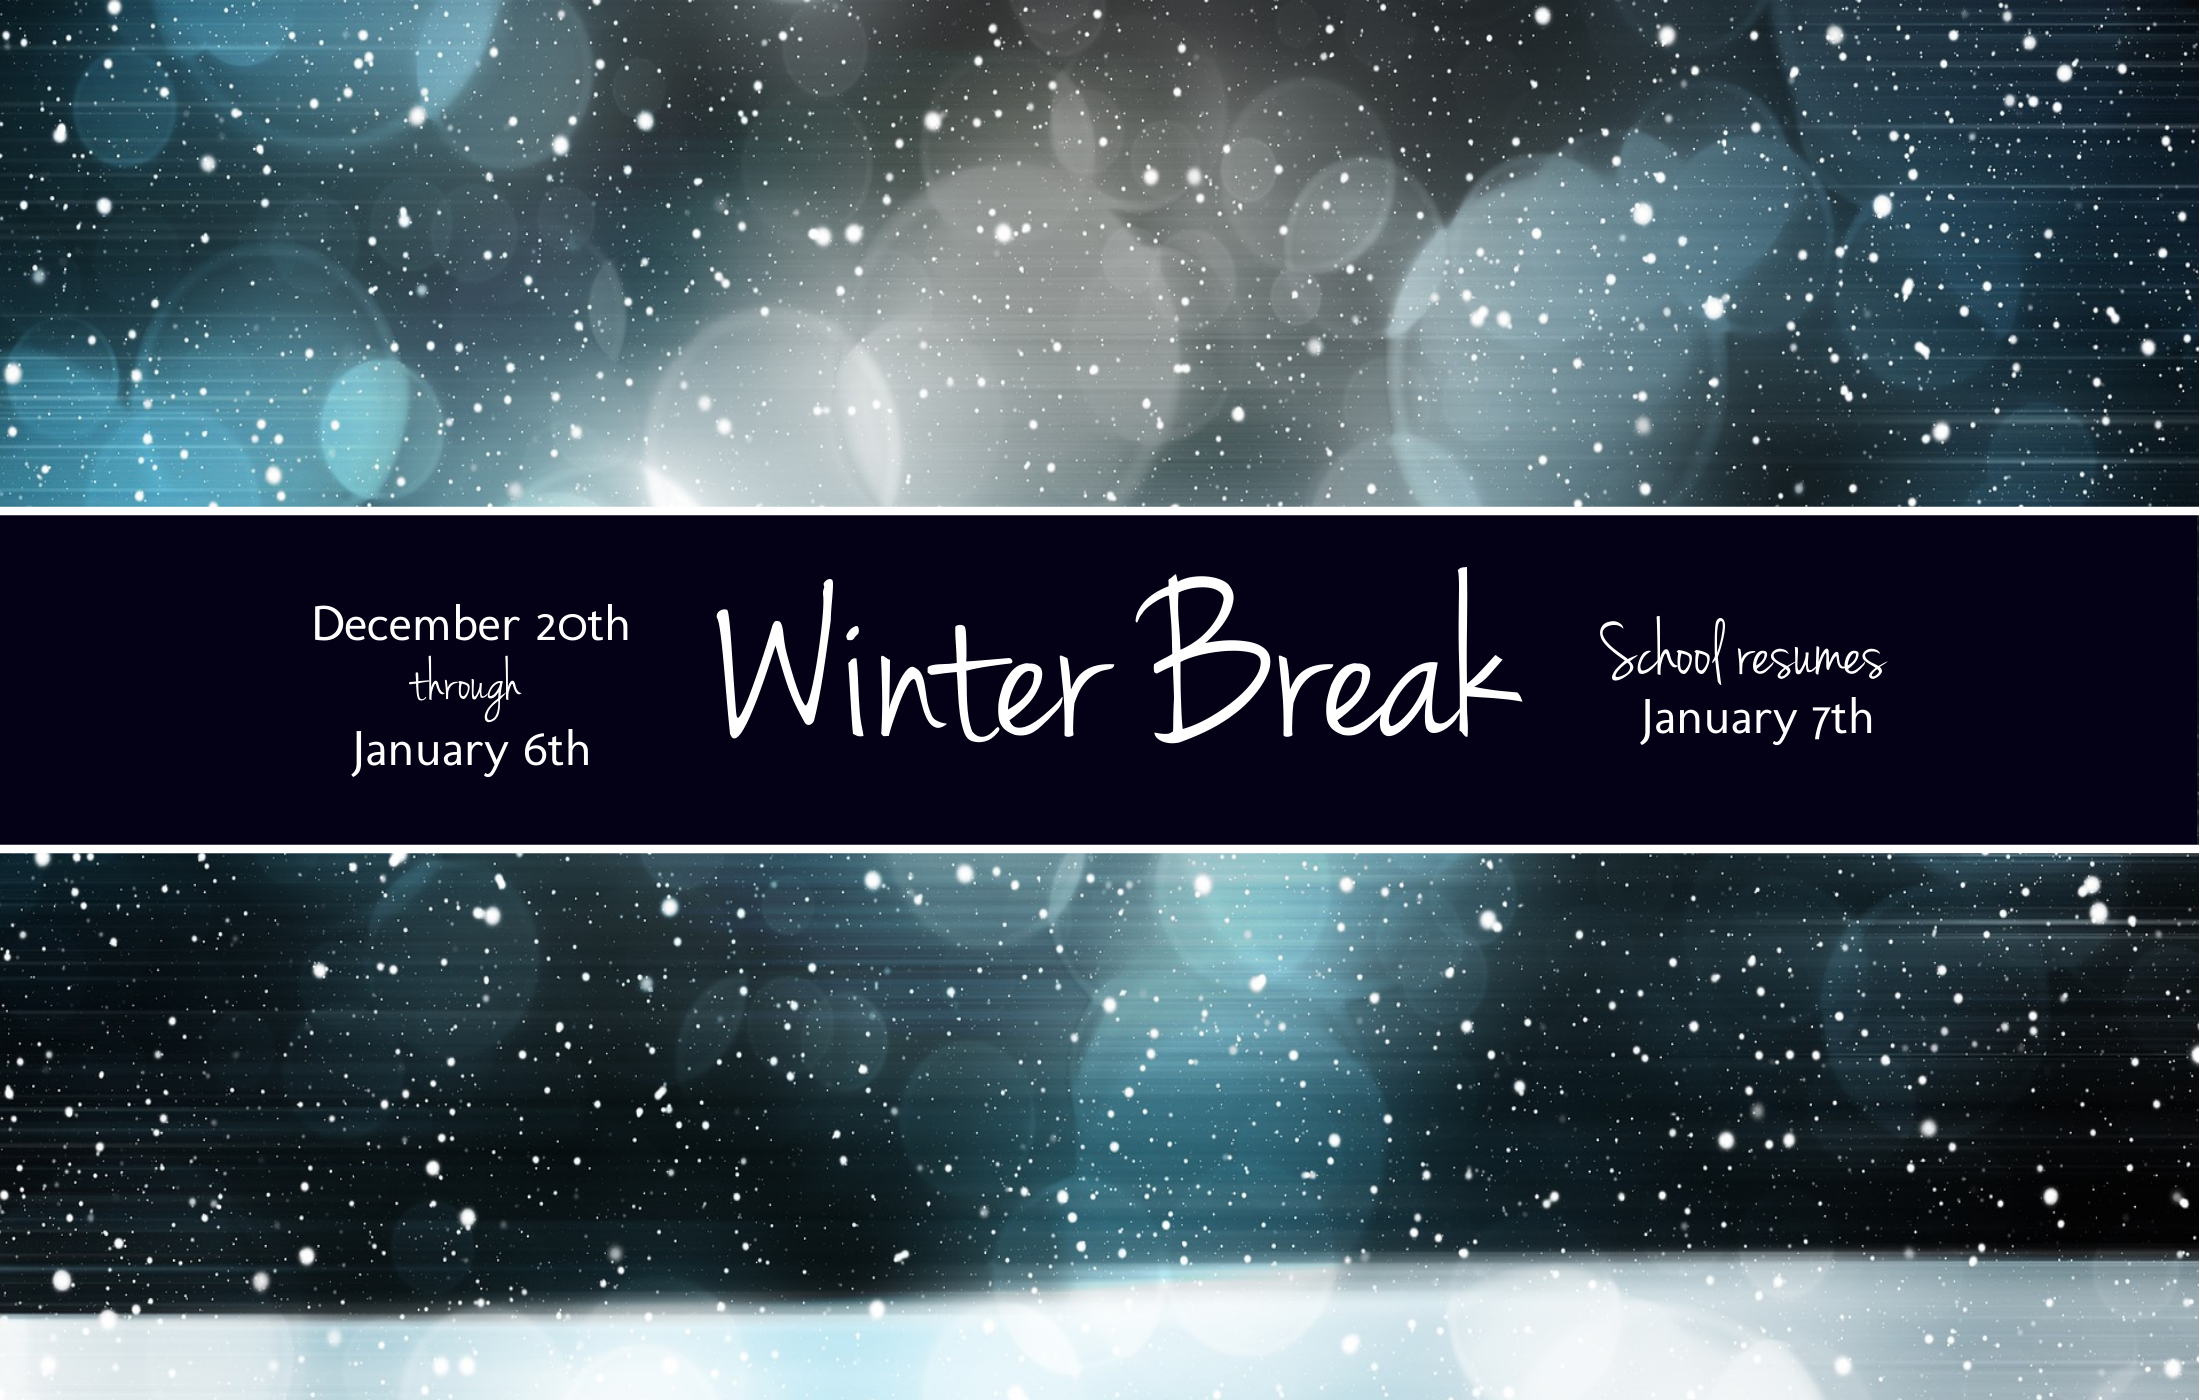 Winter Break 2018 December 20th through January 6th - School resumes on January 7th